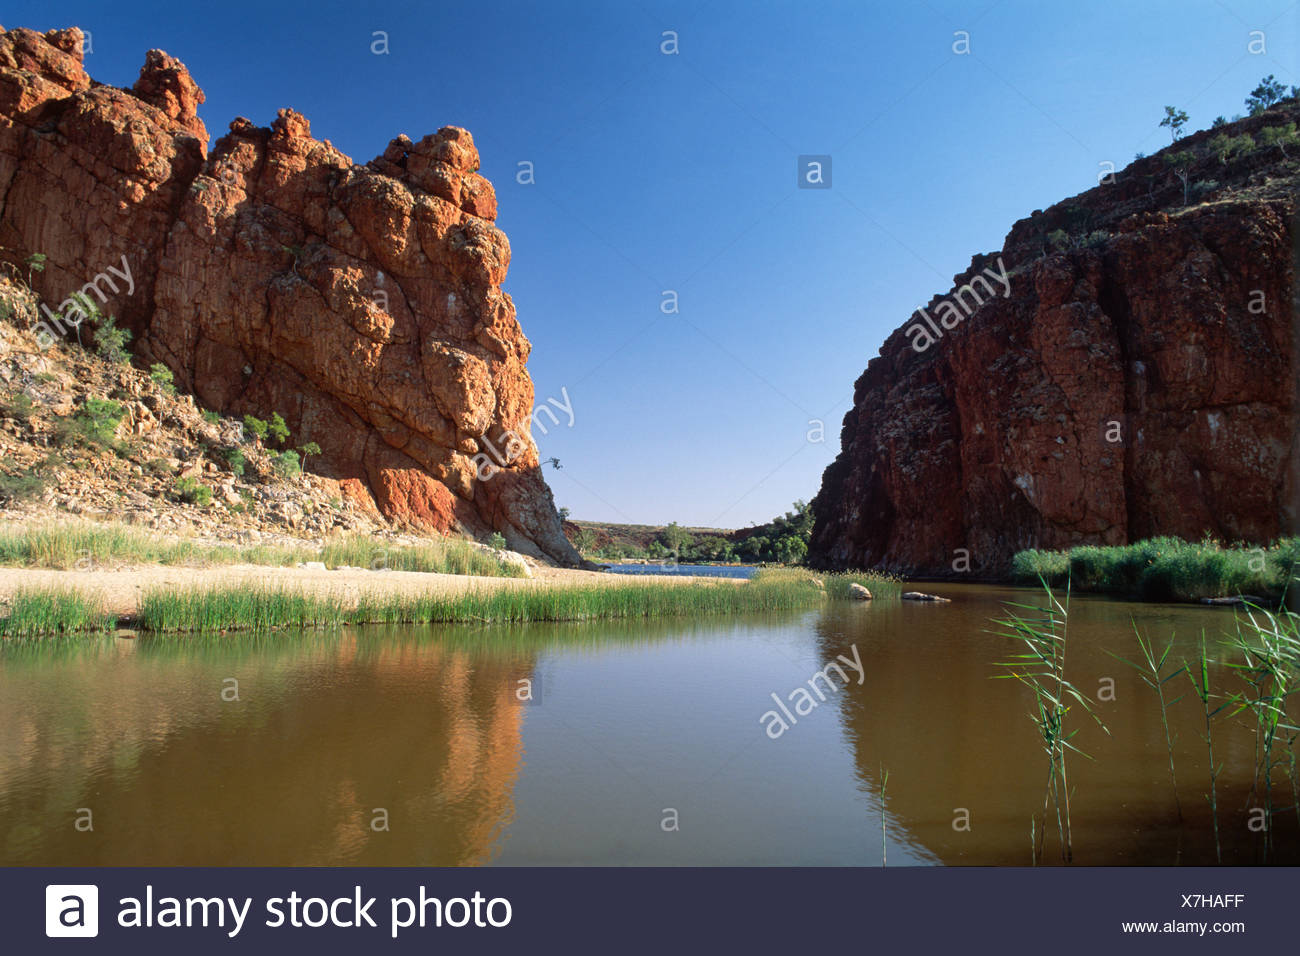 Glen Helen Gorge in the West MacDonnell National Park, Northern Territory, Australia - Stock Image